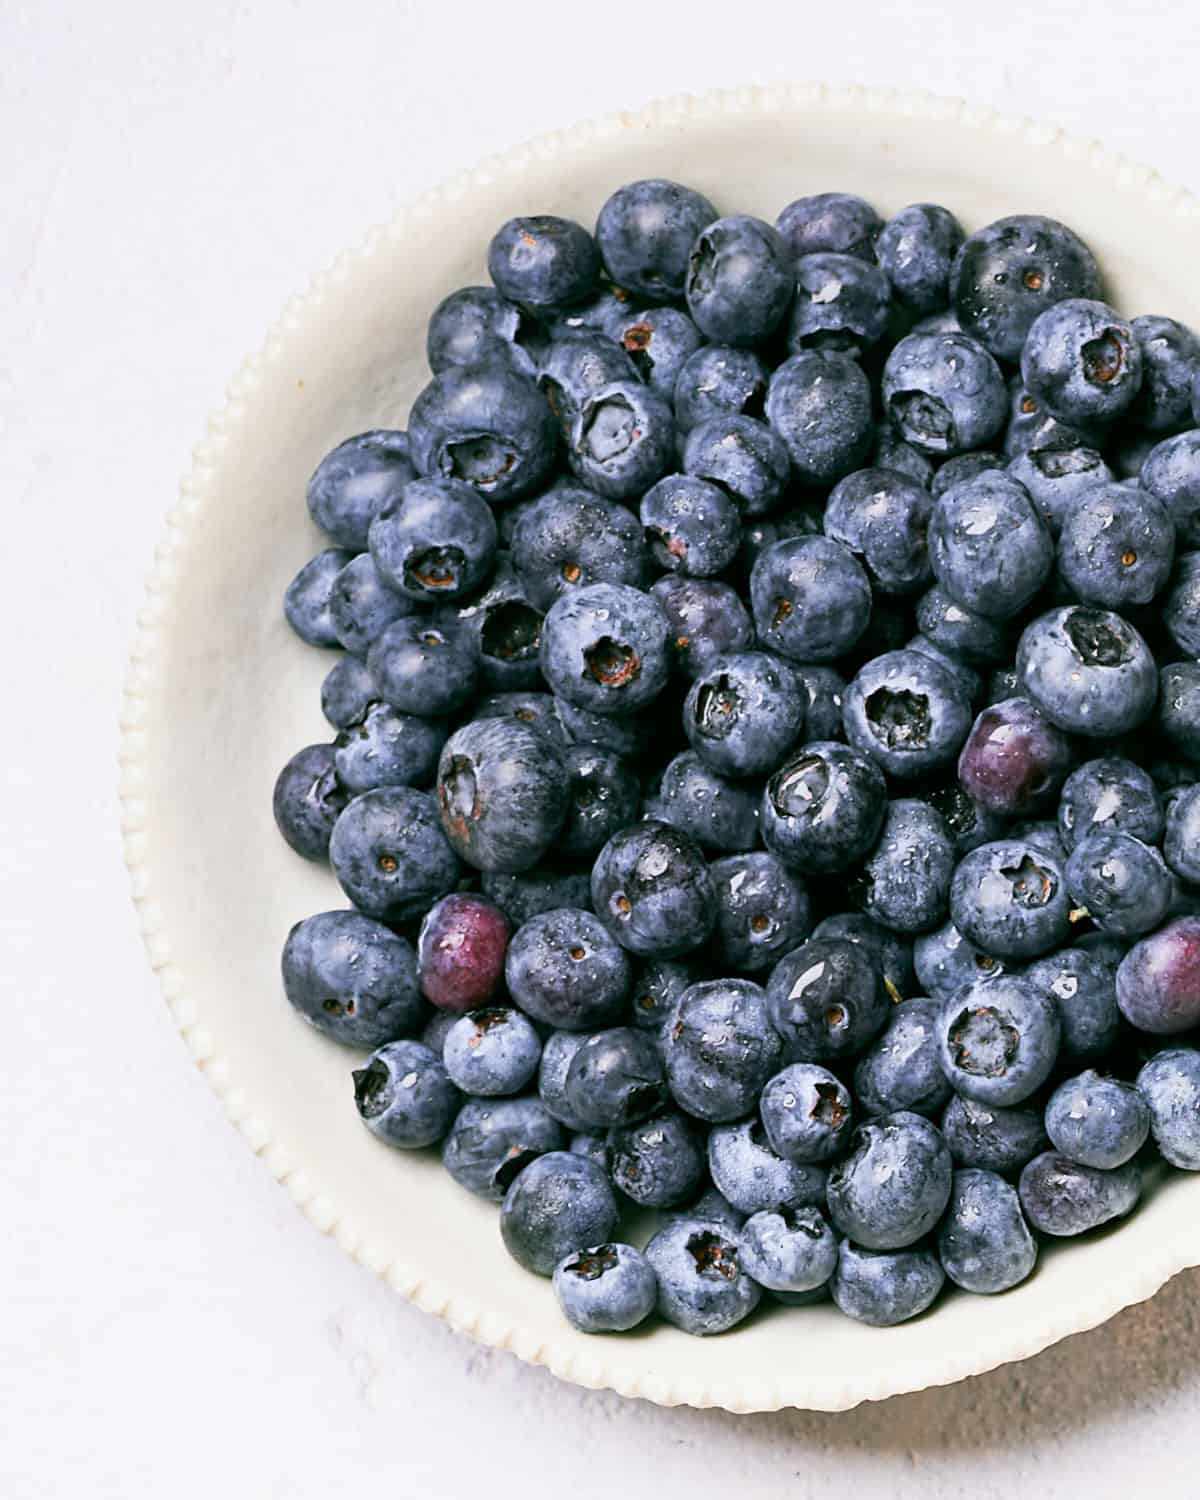 top down view of blueberries in bowl